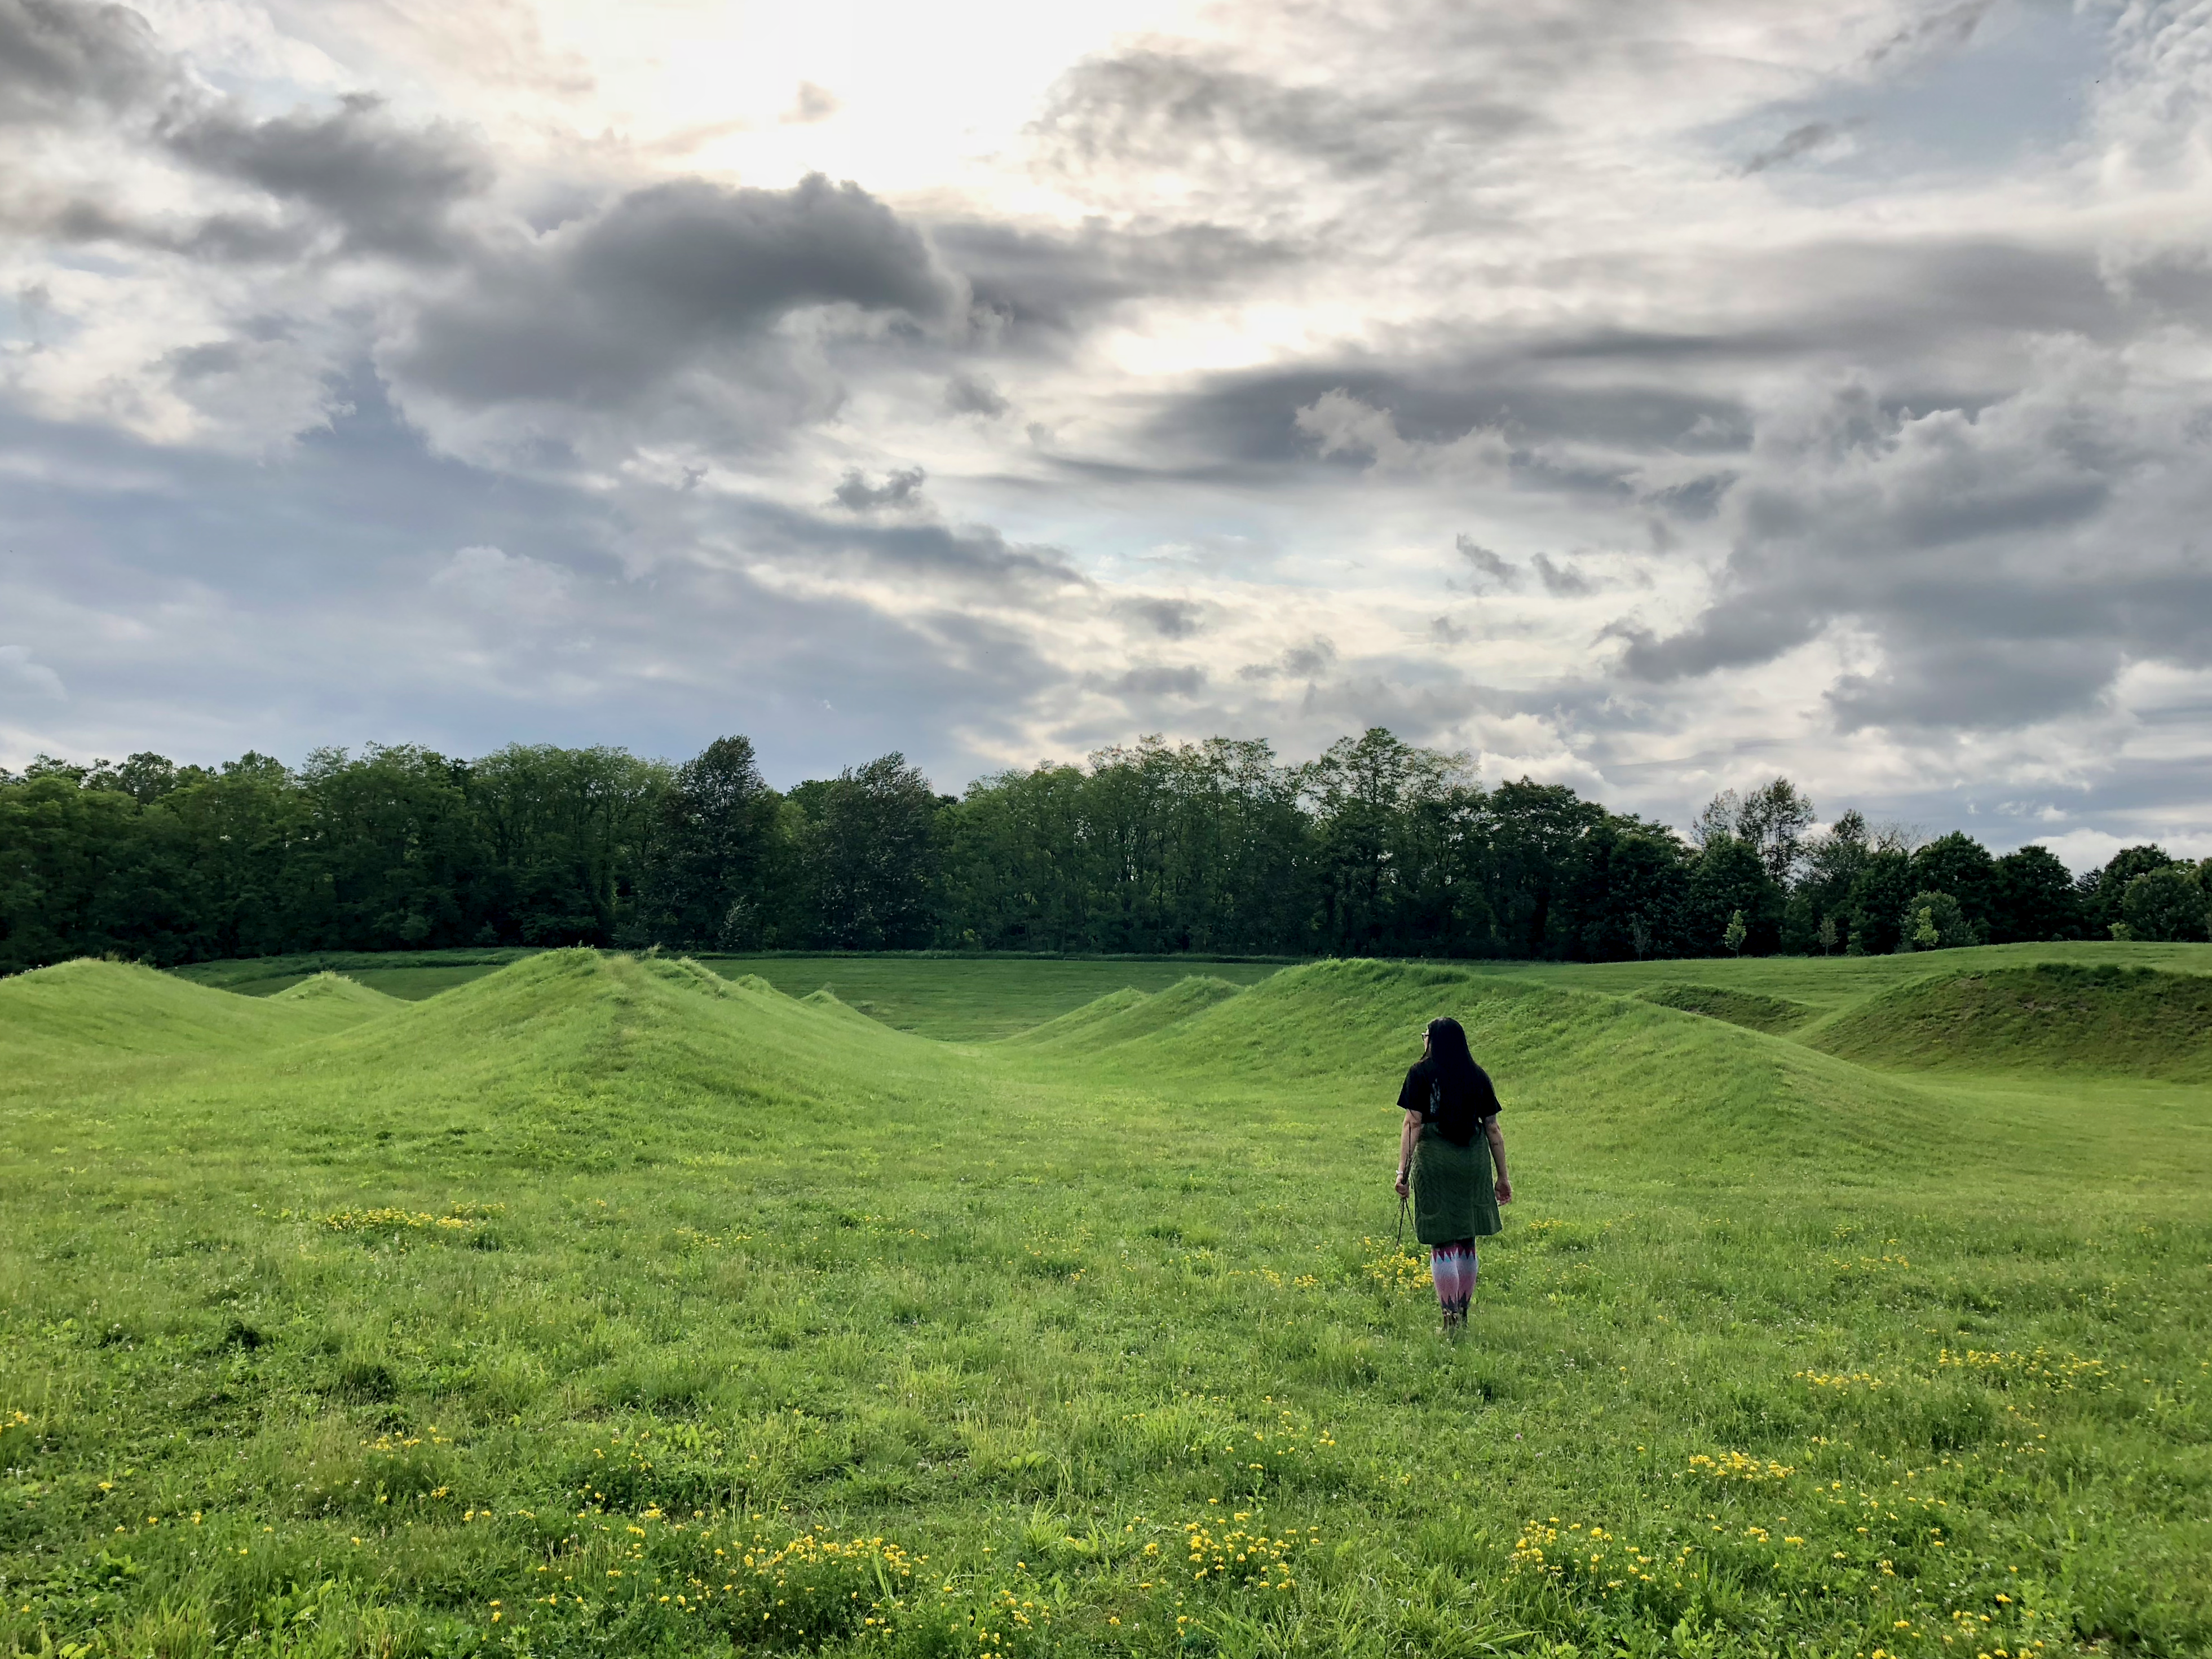 My favourite sculpture, embedded in the landscape itself, a sculpture of wavy hills by Maya Lin.